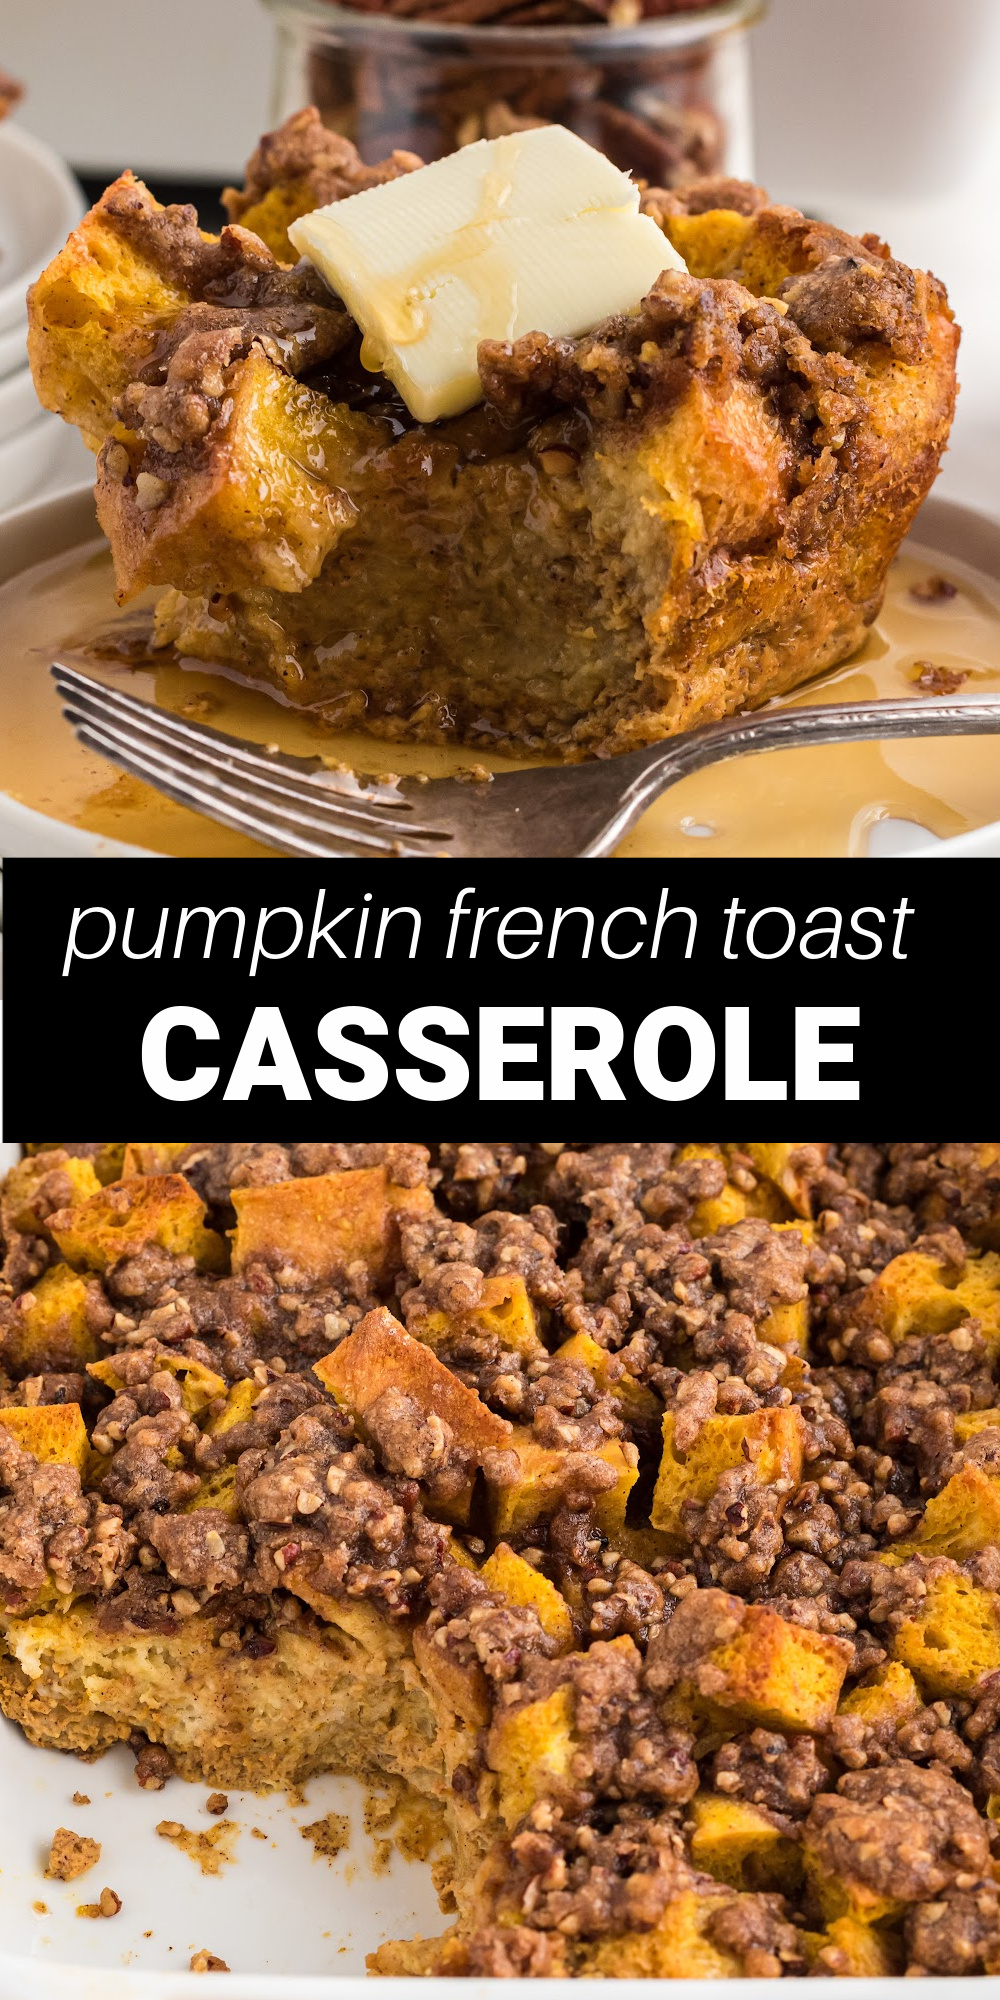 Pumpkin French Toast Casserole is delicious twist on the classic breakfast dish that's perfect for fall. French bread is immersed in heavy cream, brown sugar, pumpkin puree and warm pumpkin pie spices, then topped a sugary pecan mixture that's makes a breakfast dish worthy of any holiday.